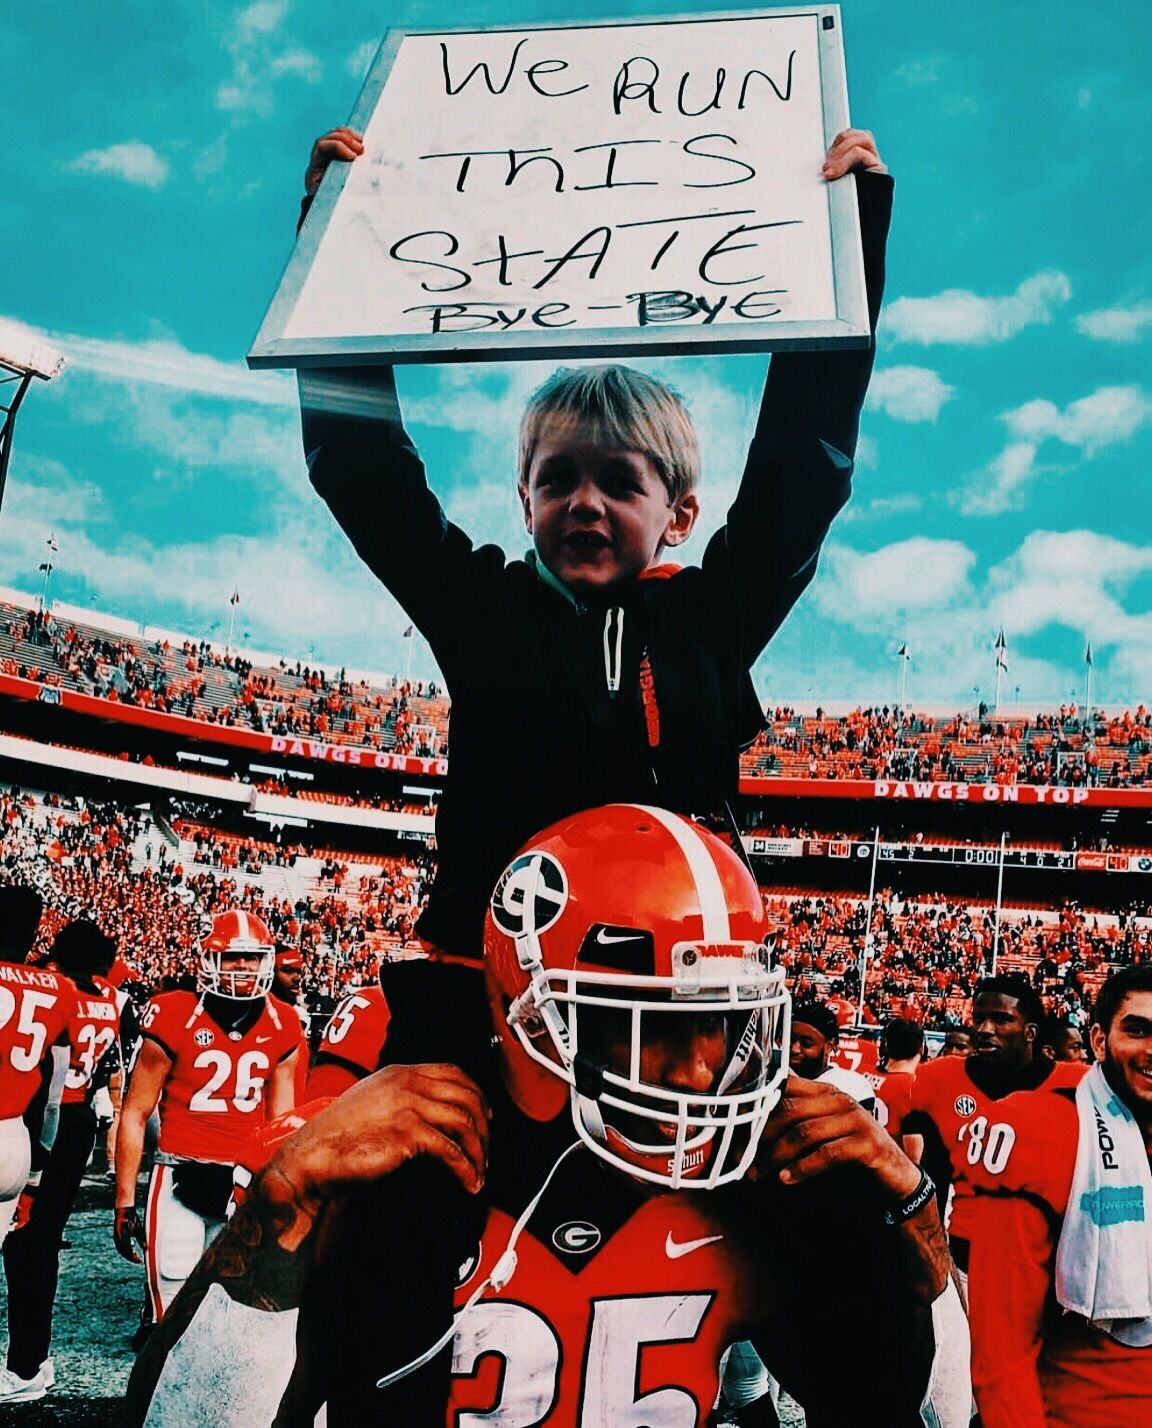 Pin by kate green on uga Collage football, Football